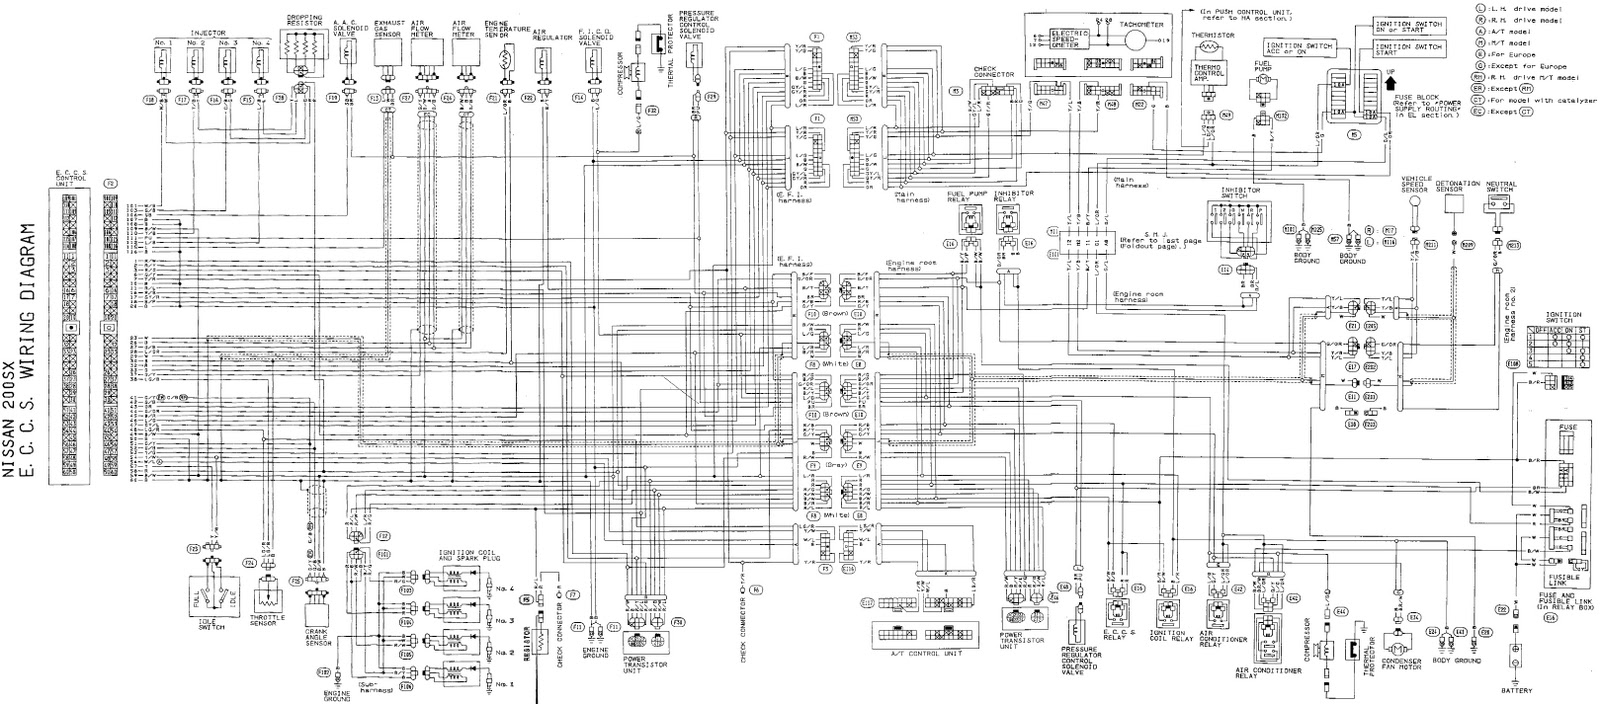 Amazing Gq Patrol Wiring Diagram Picture Collection - Wiring Diagram ...